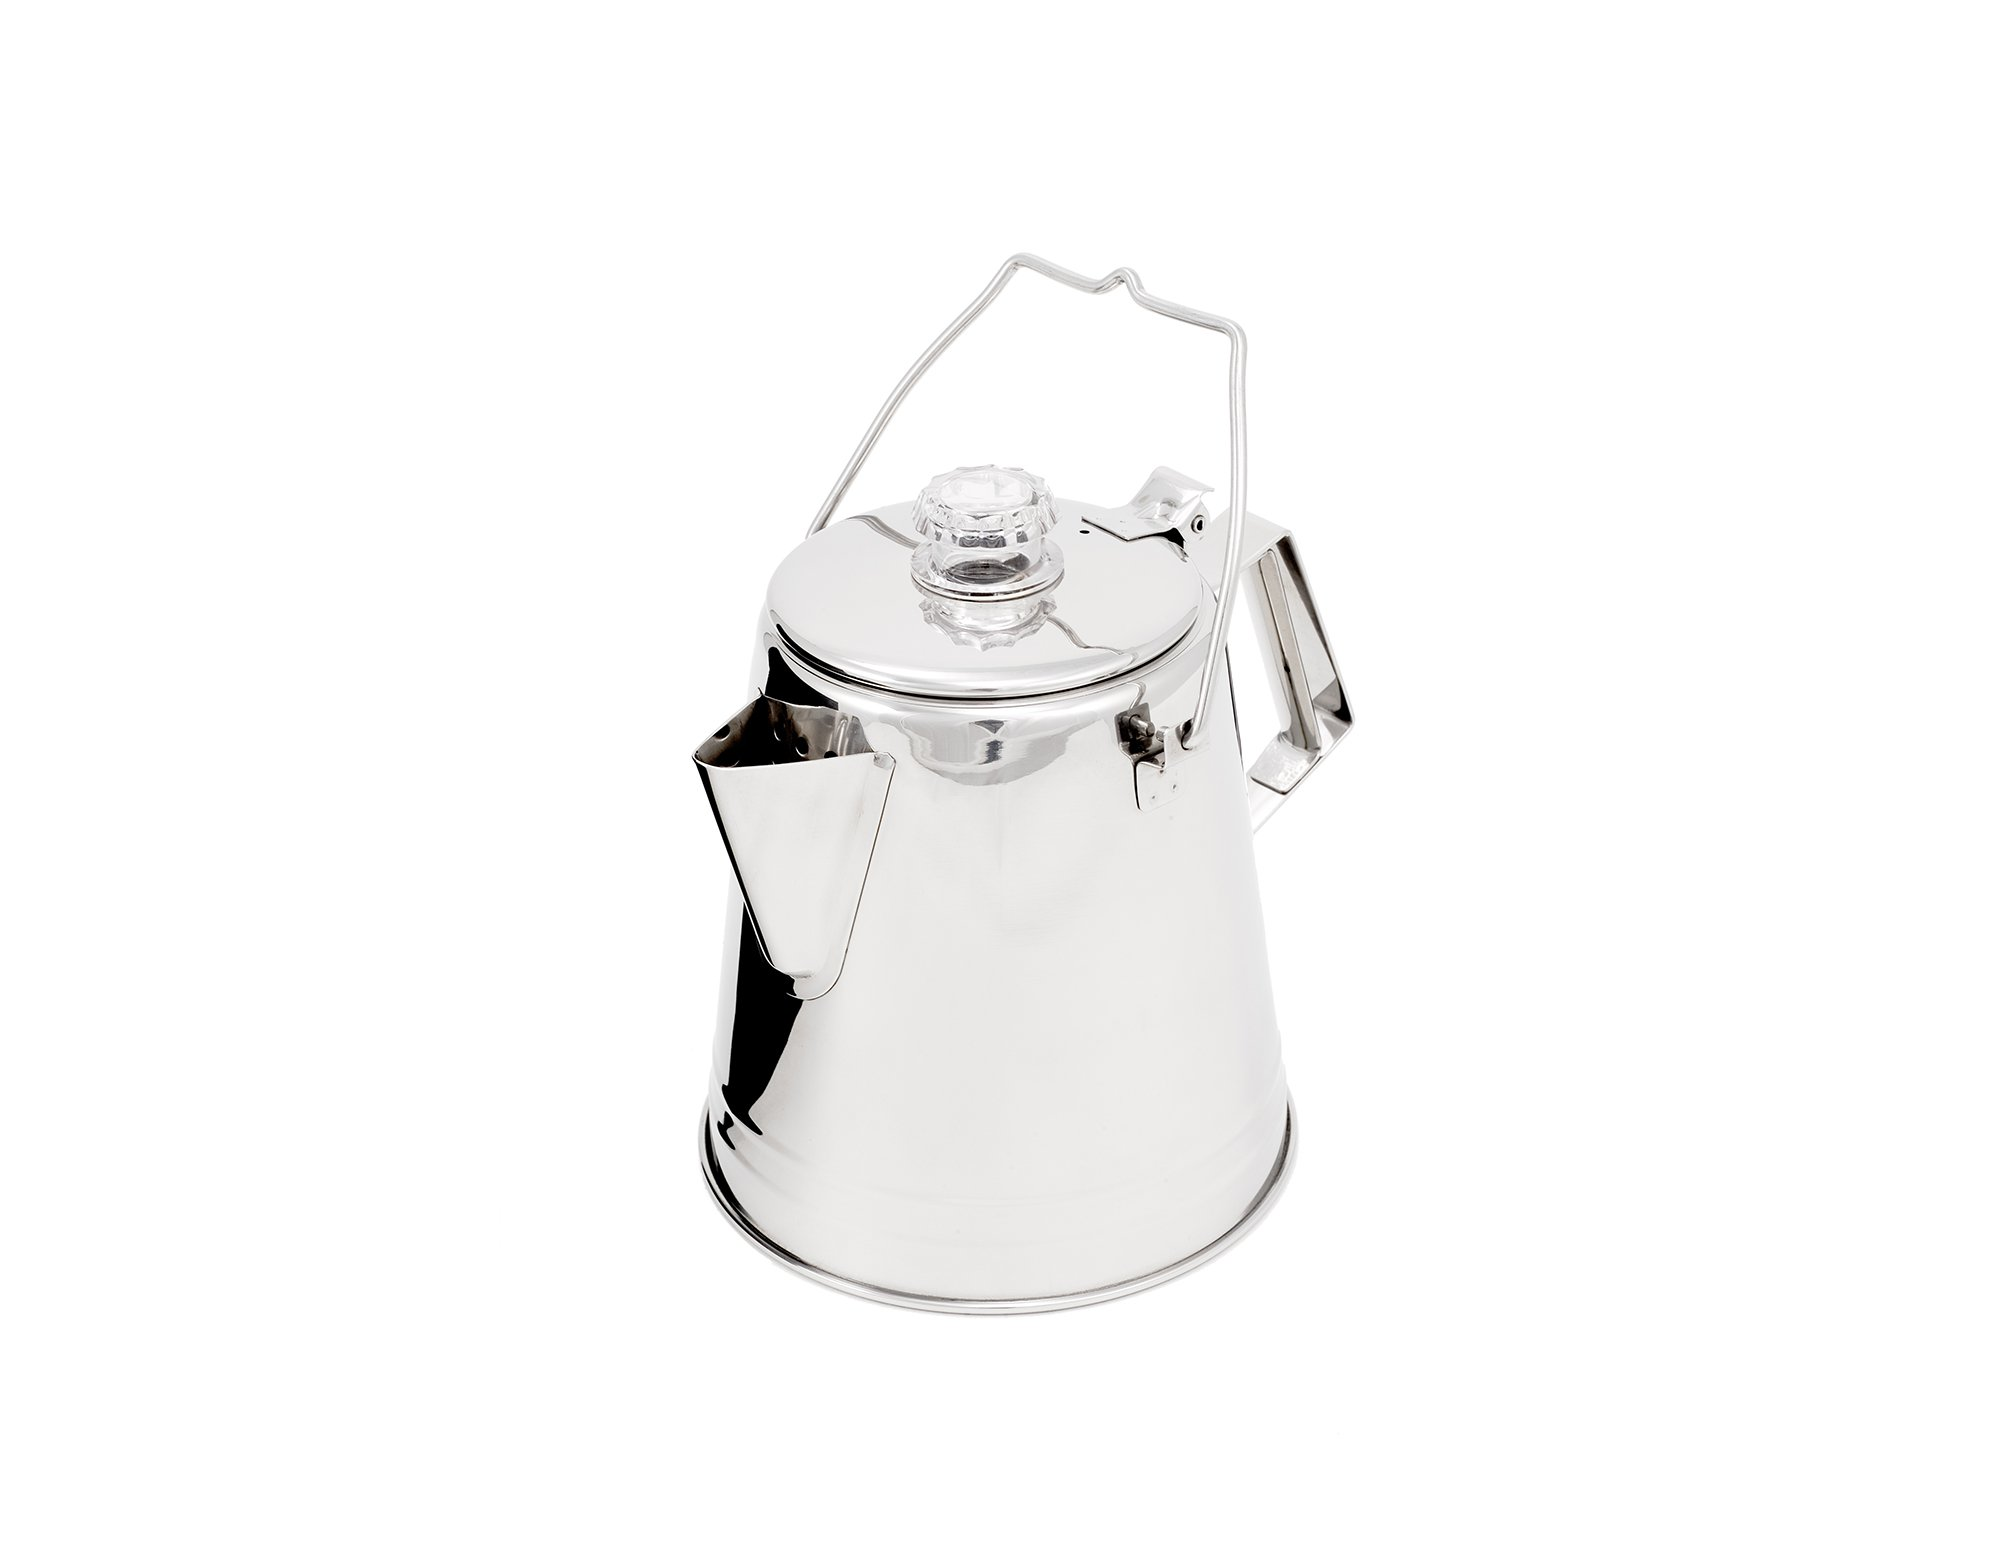 GSI Outdoors Glacier Stainless Steel 8 Cup Percolator Ultra-Rugged for Brewing Coffee While Camping with Groups by GSI Outdoors